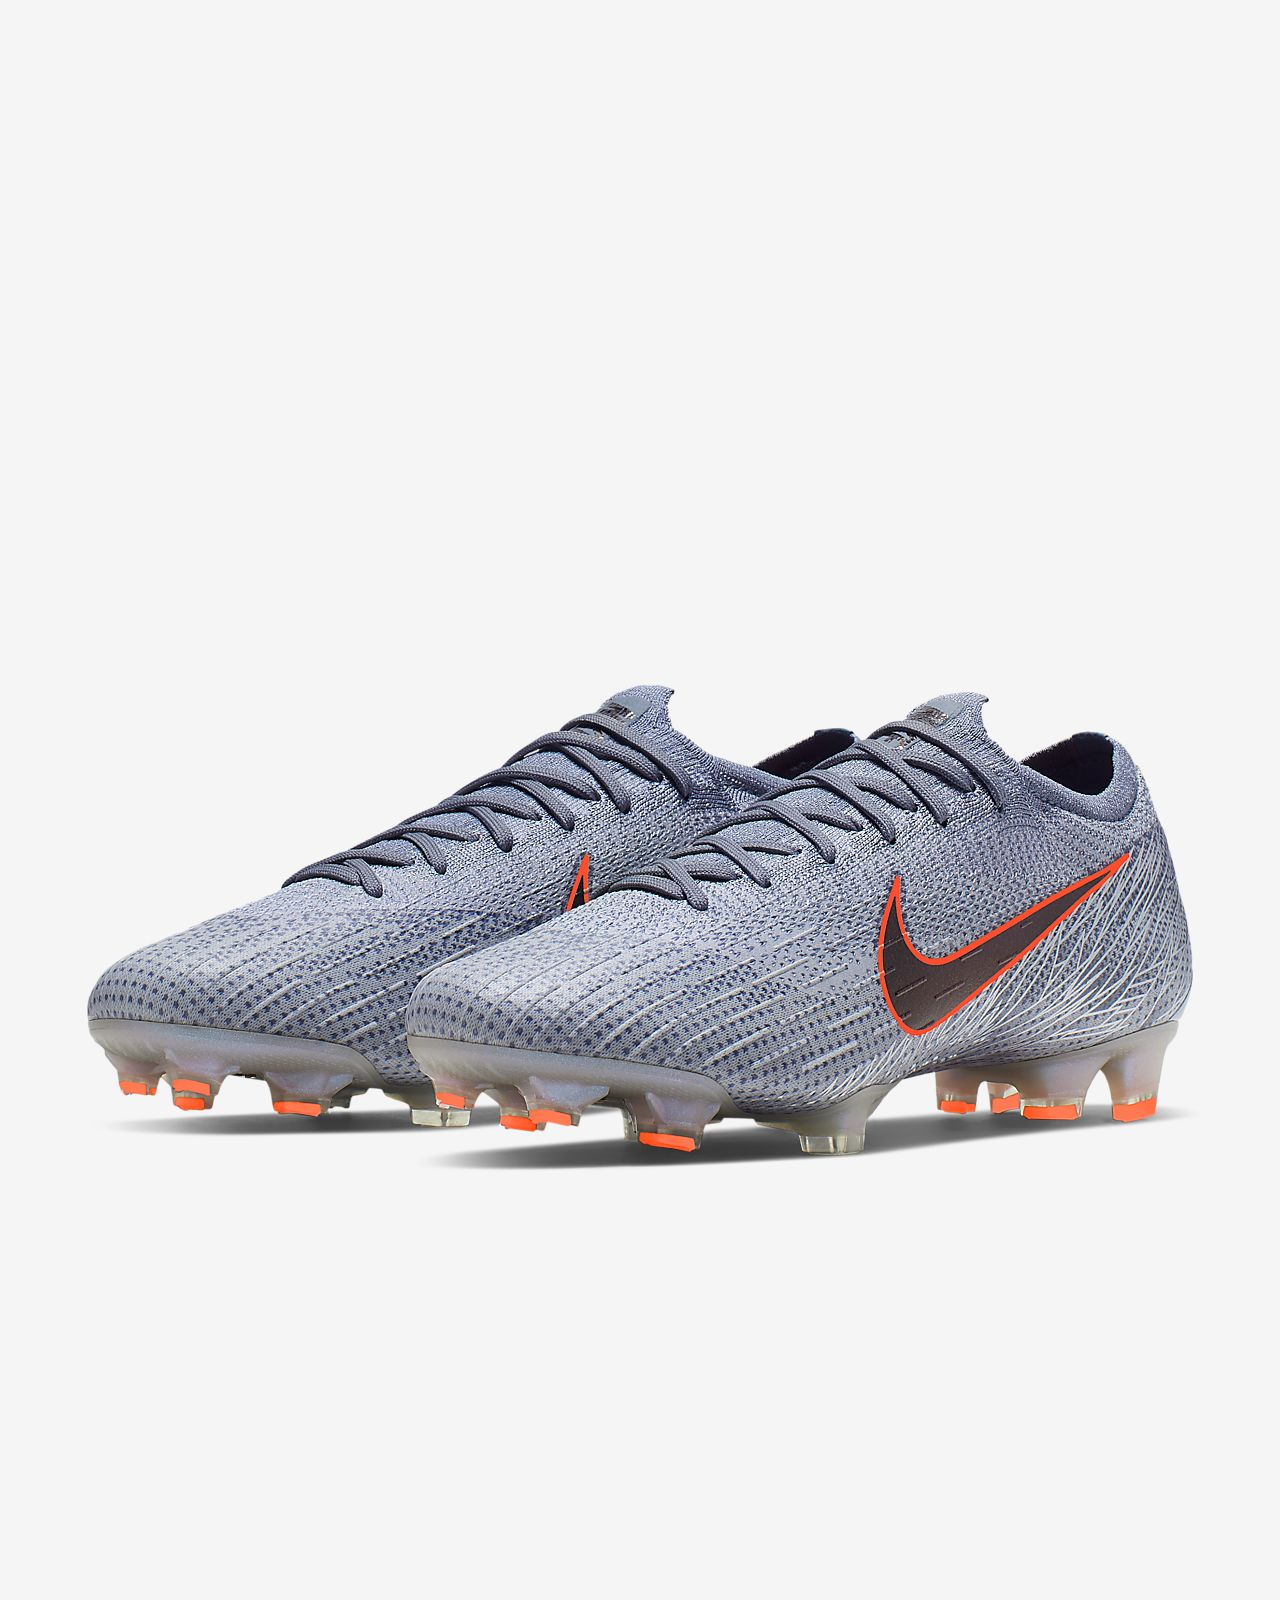 dd80e84ba29 Nike Vapor 12 Elite FG Firm-Ground Soccer Cleat